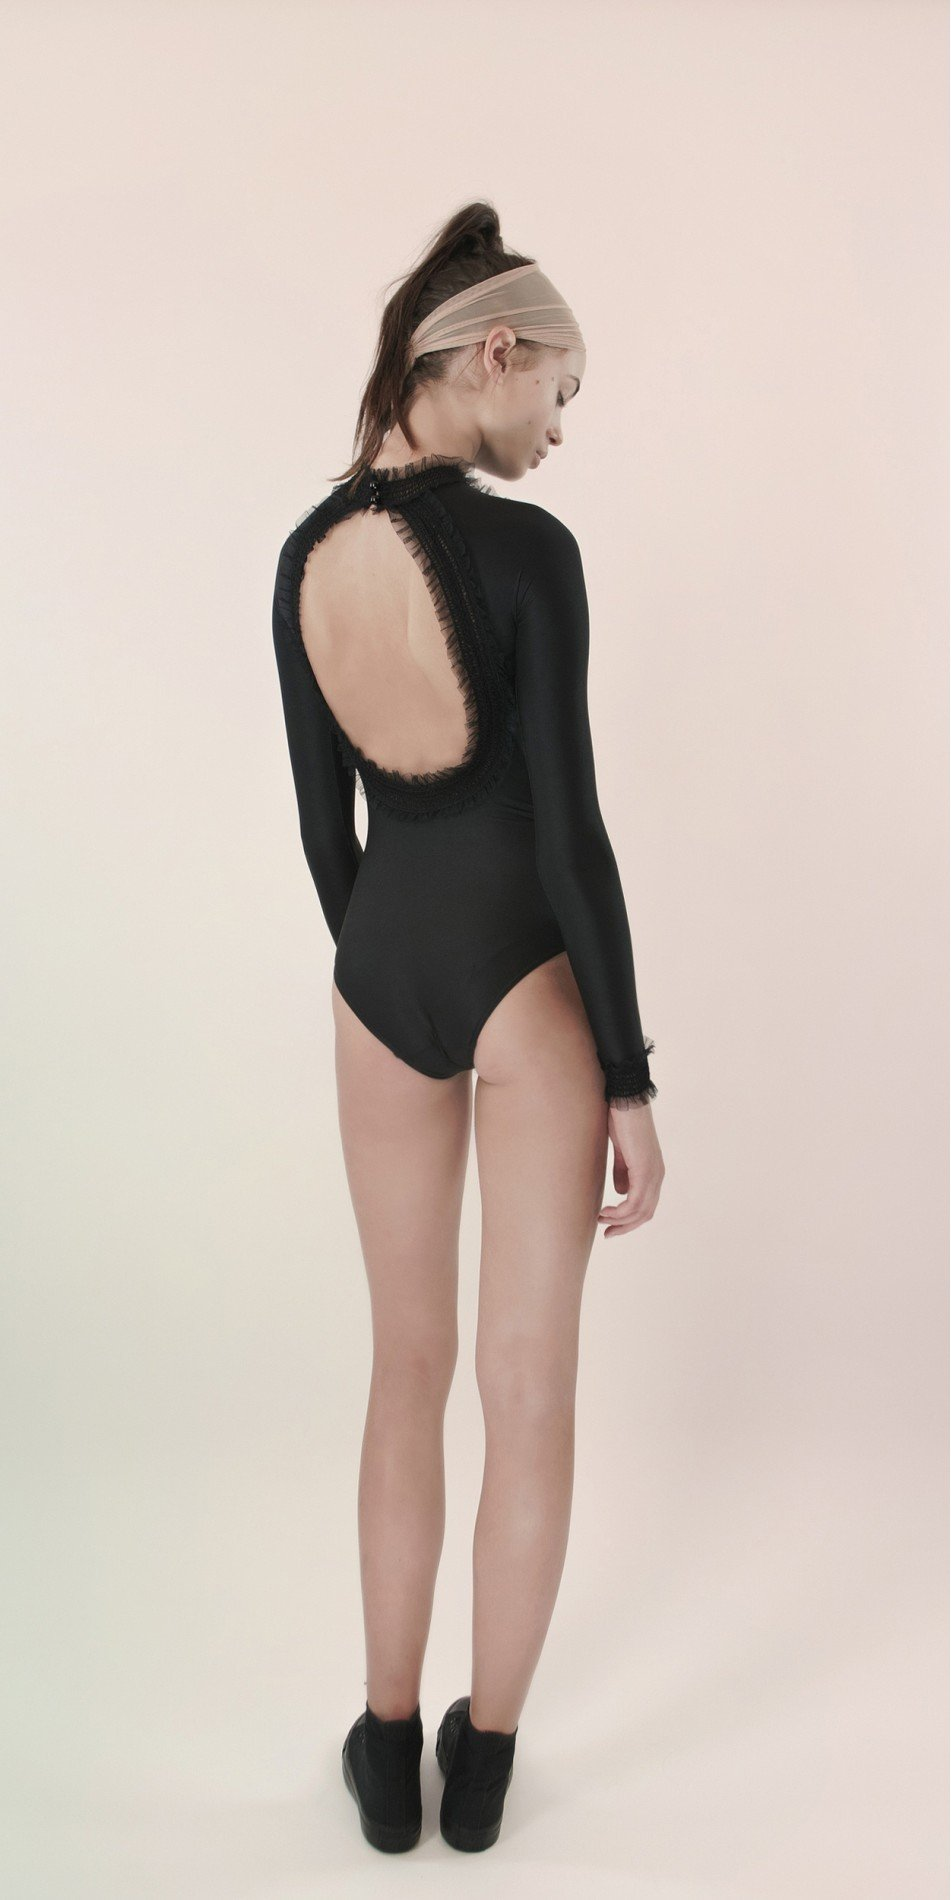 ELEANOR backless20leotard blk 1 r